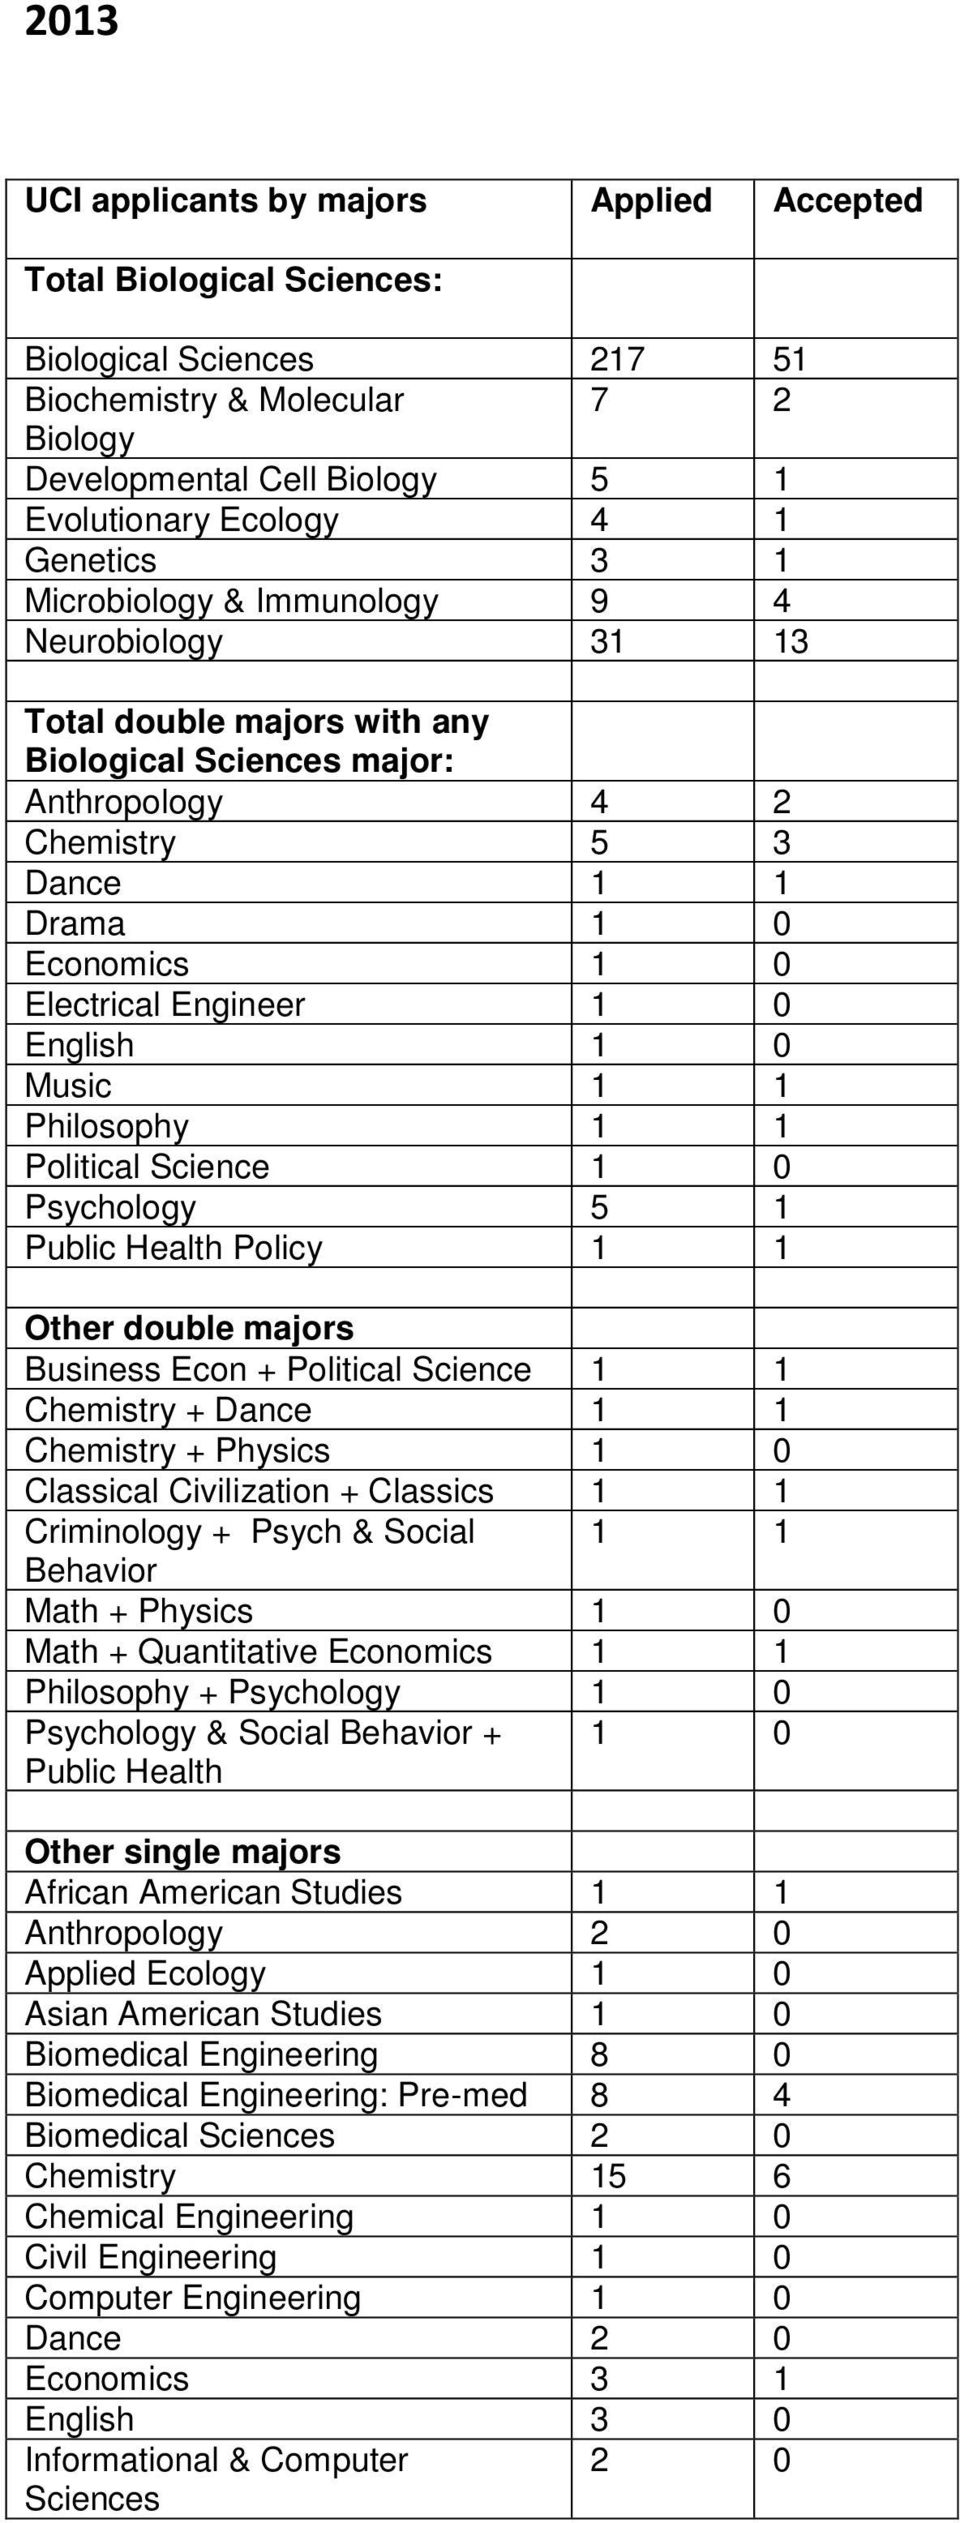 English 1 0 Music 1 1 Philosophy 1 1 Political Science 1 0 Psychology 5 1 Public Health Policy 1 1 Other double majors Business Econ + Political Science 1 1 Chemistry + Dance 1 1 Chemistry + Physics